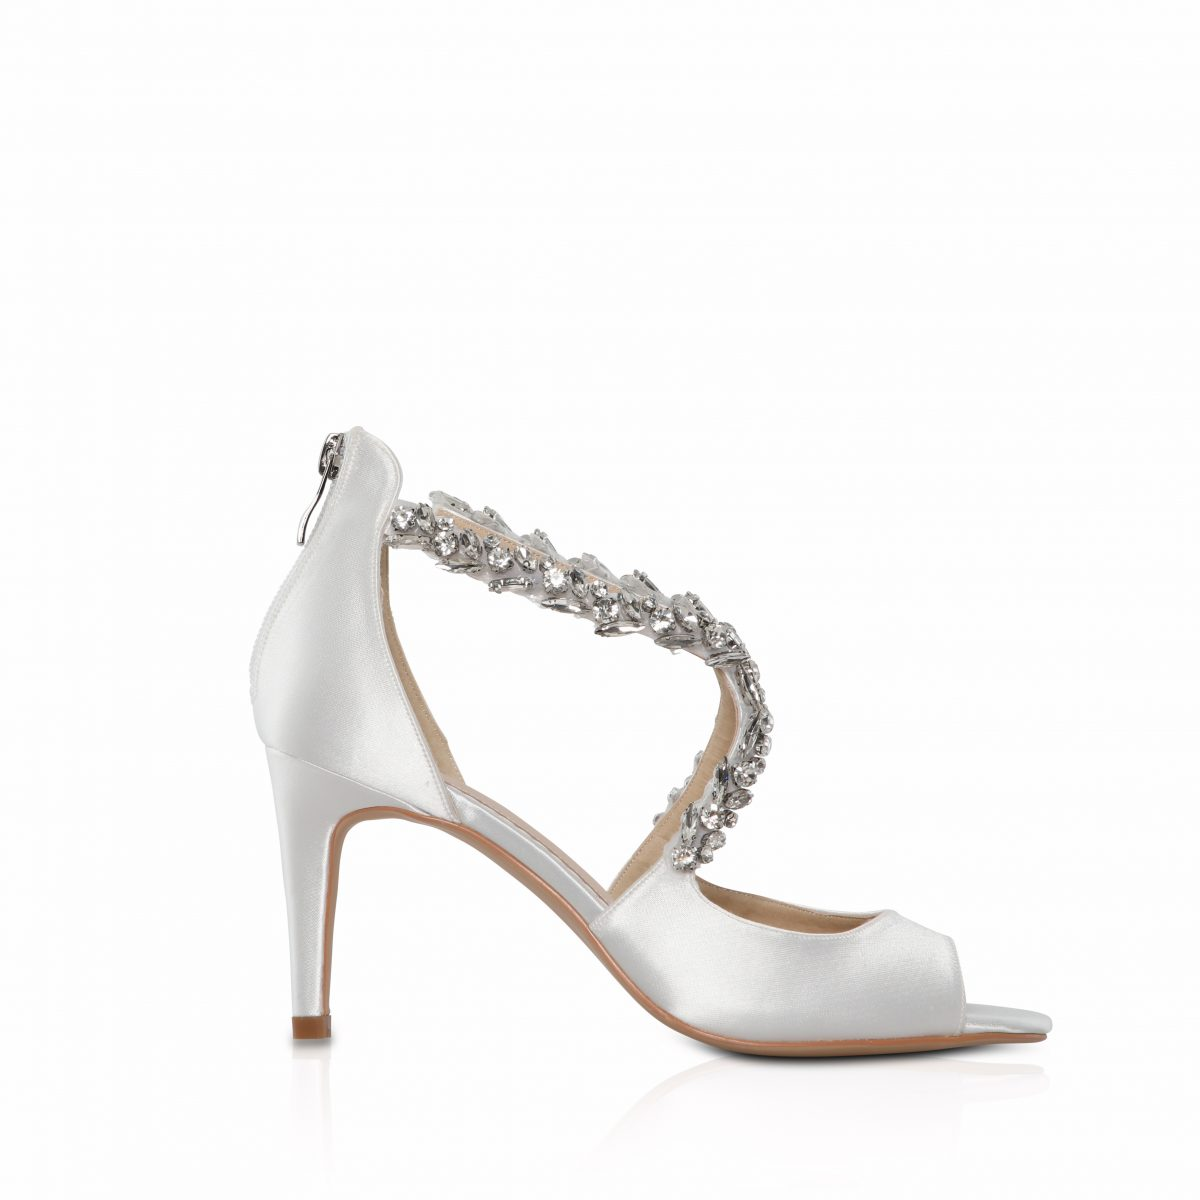 Perfect Bridal Katelyn Shoes - Ivory Satin 1